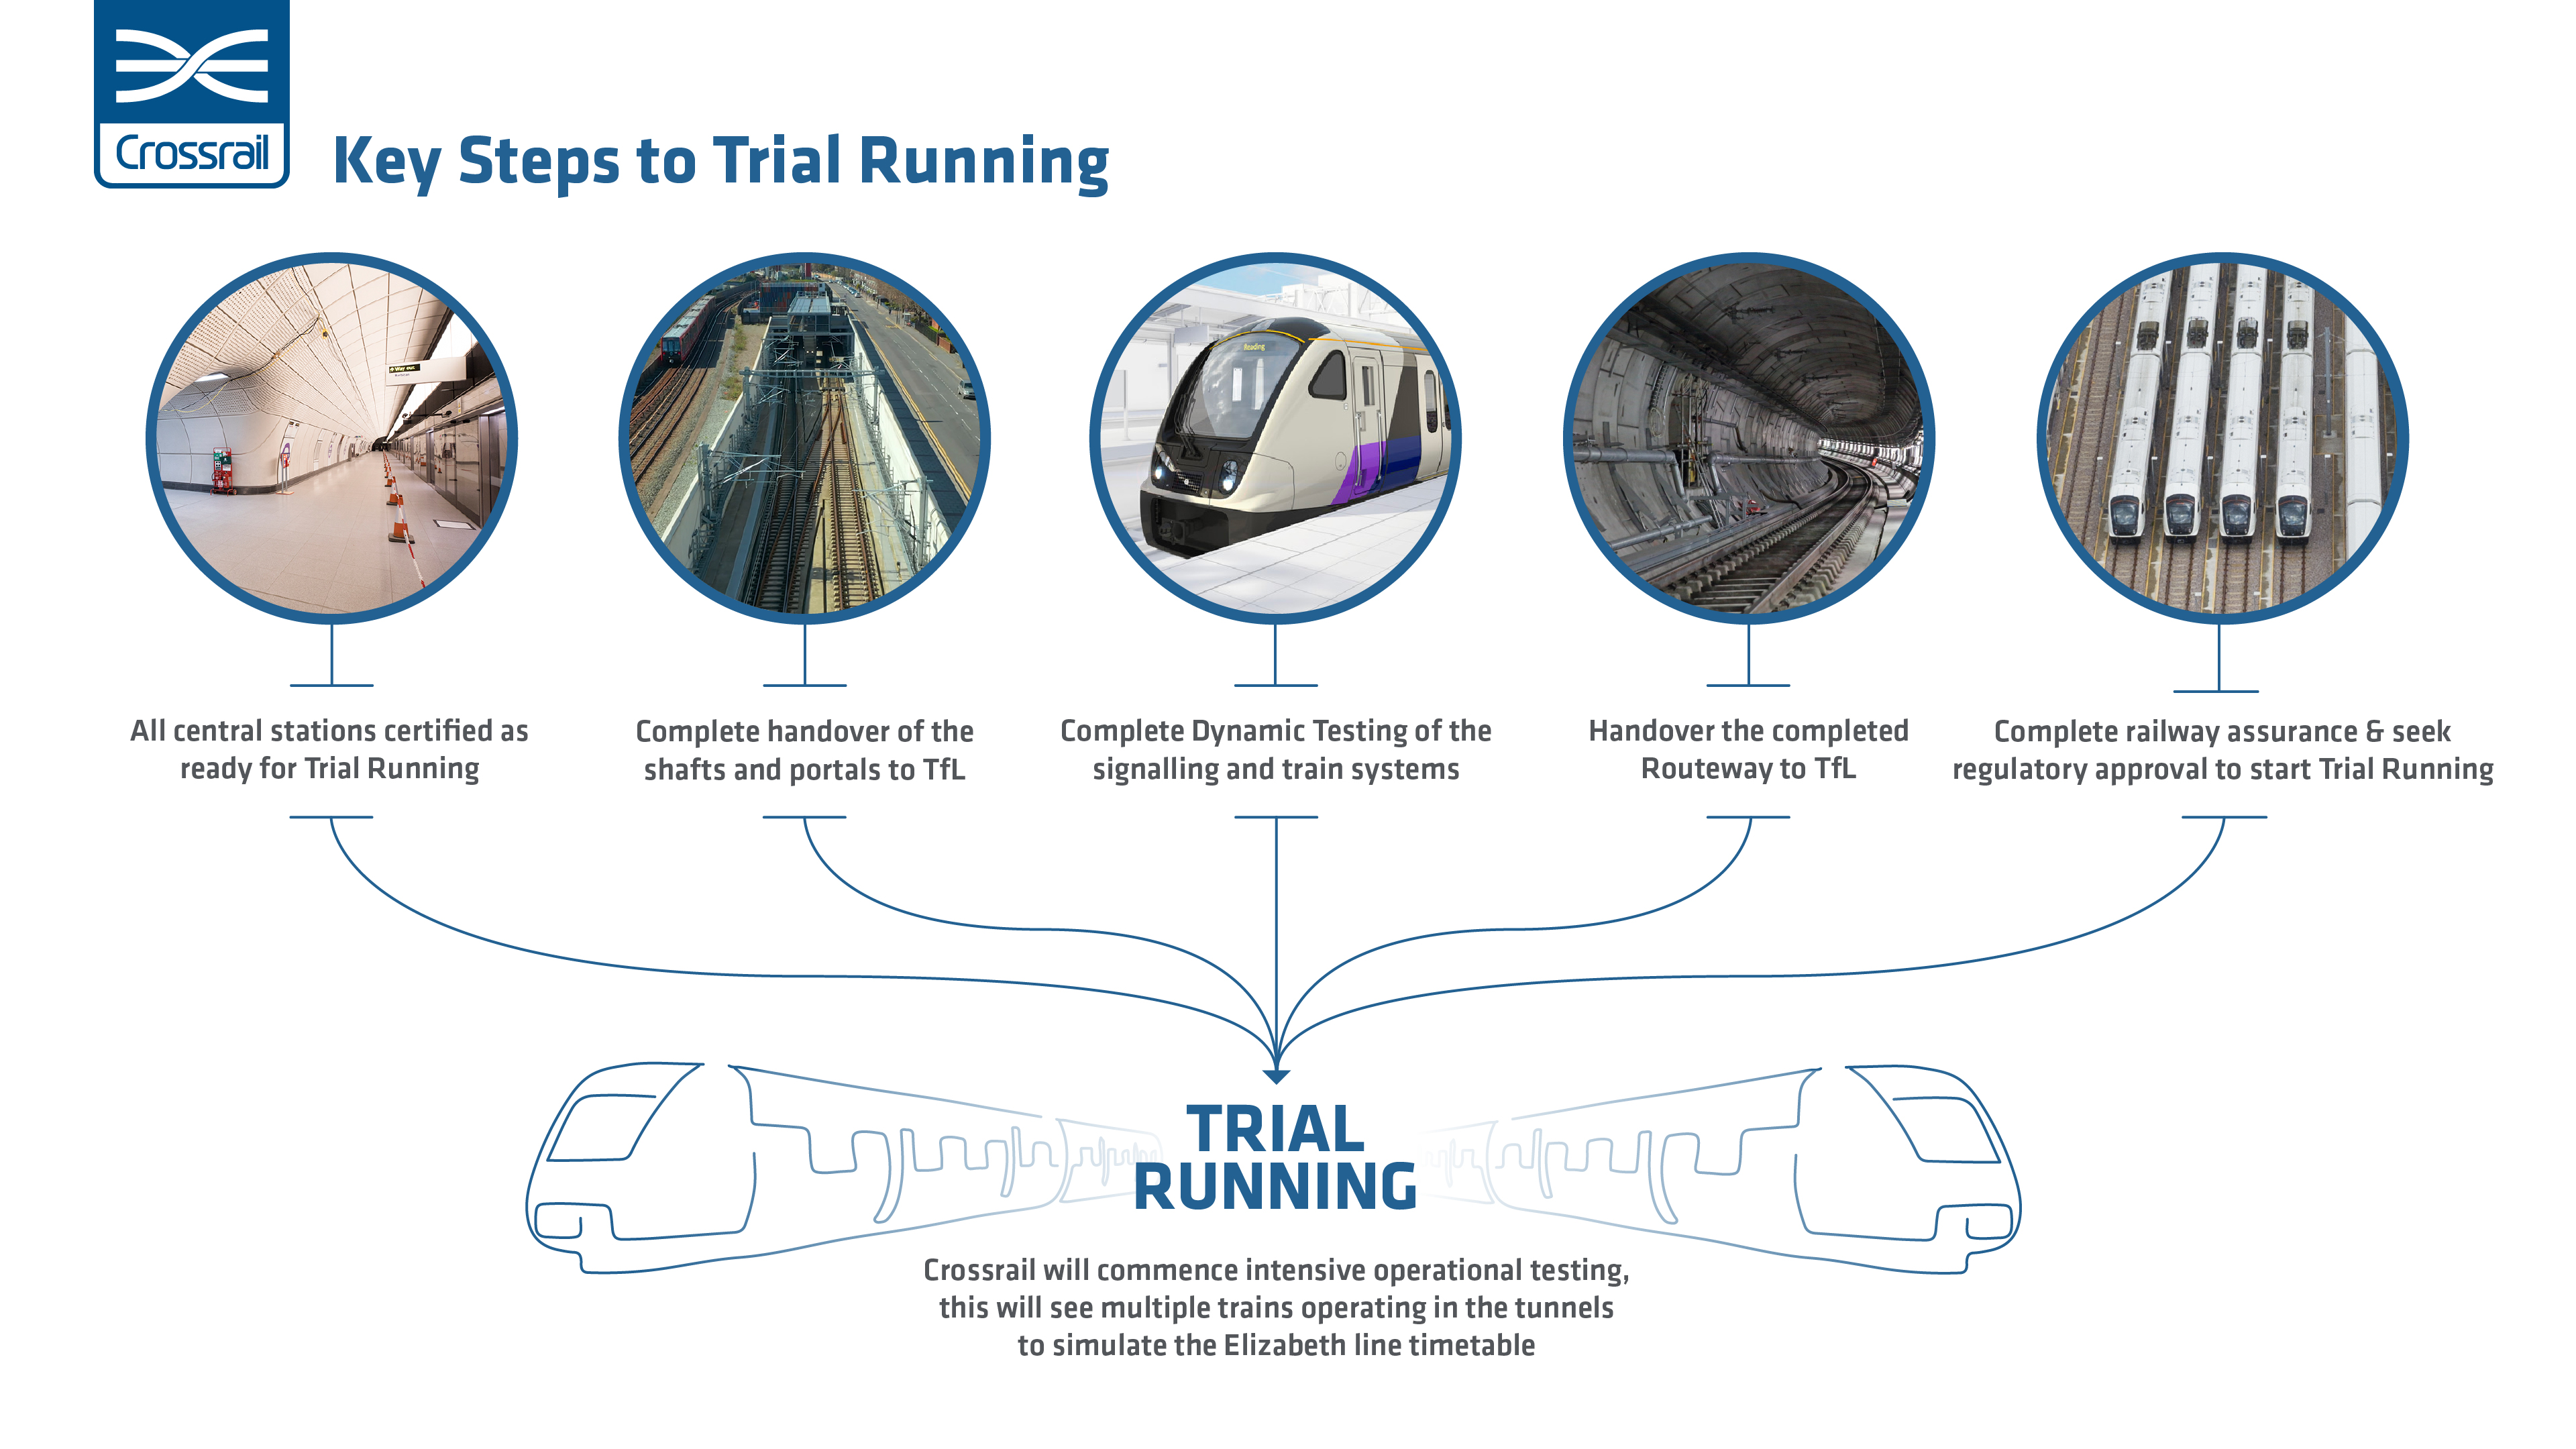 Key steps to Trial Running